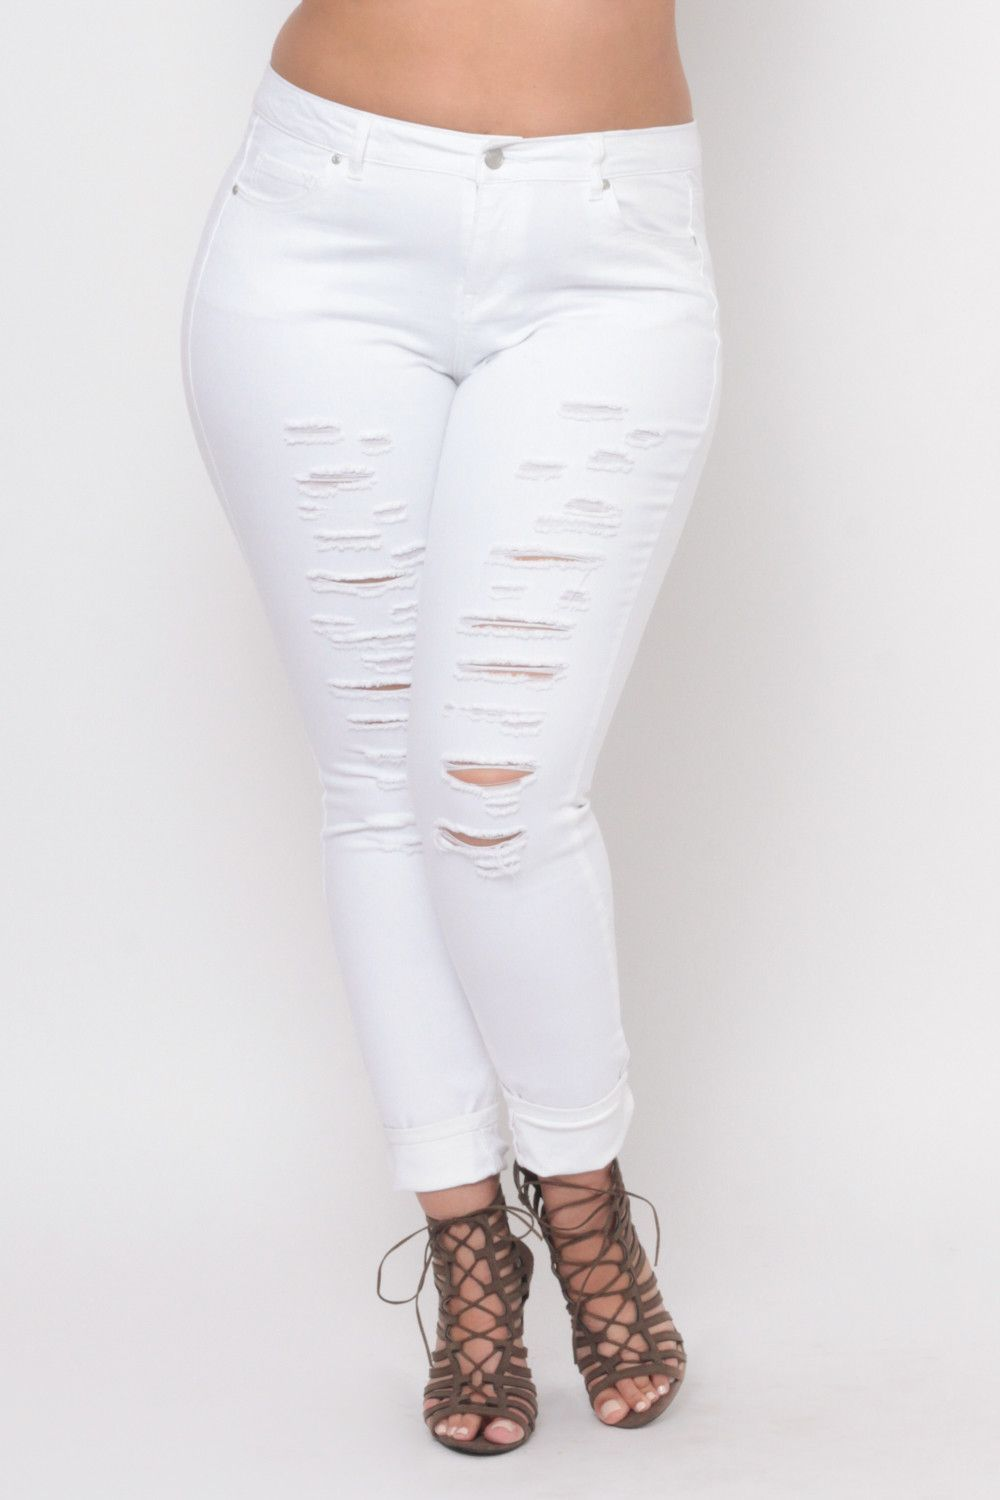 dbc436a9861 Plus Size Distressed Ripped Skinny Jeans - White